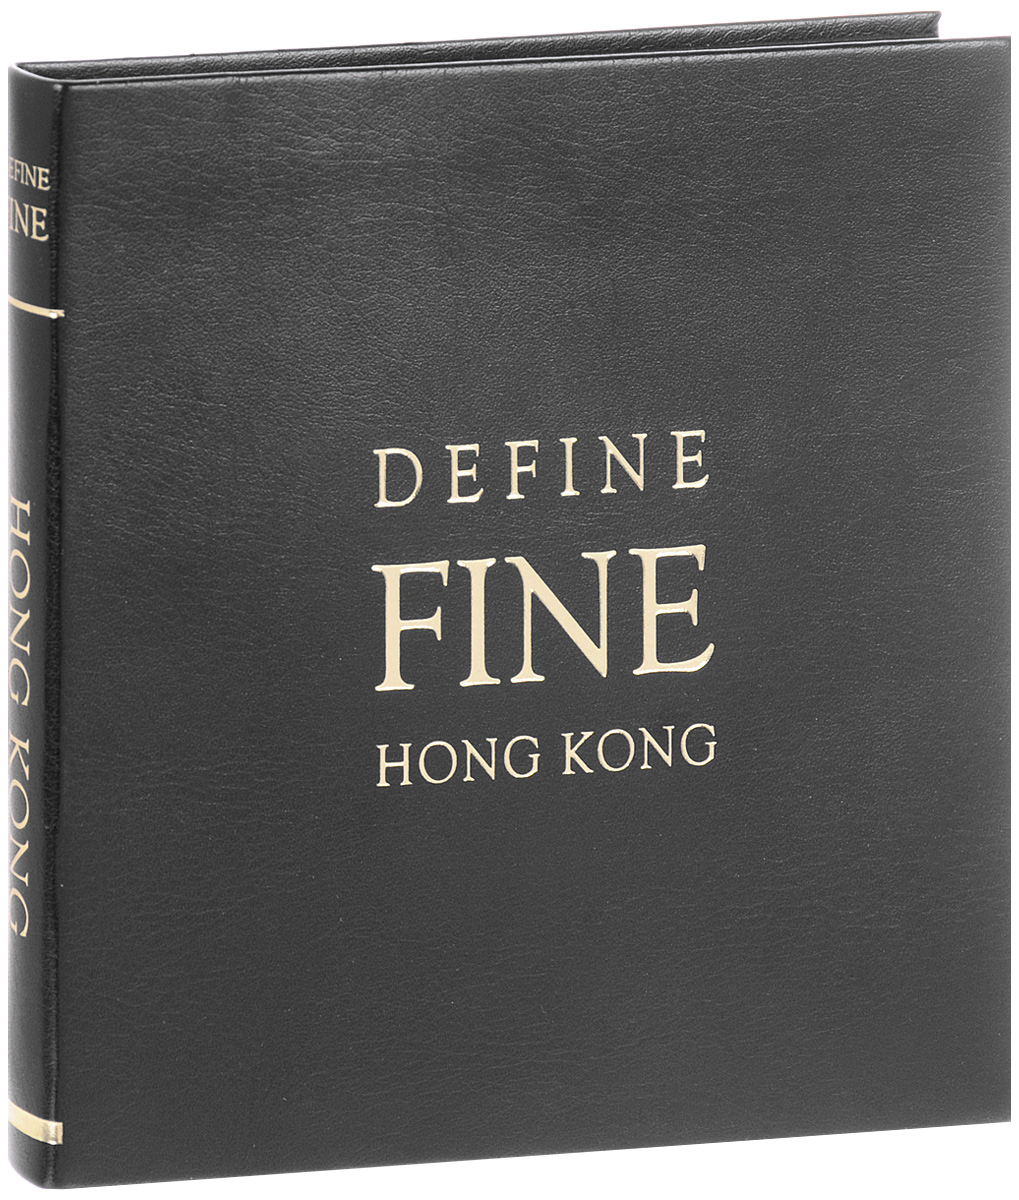 Hong Kong: Define Fine Guide.